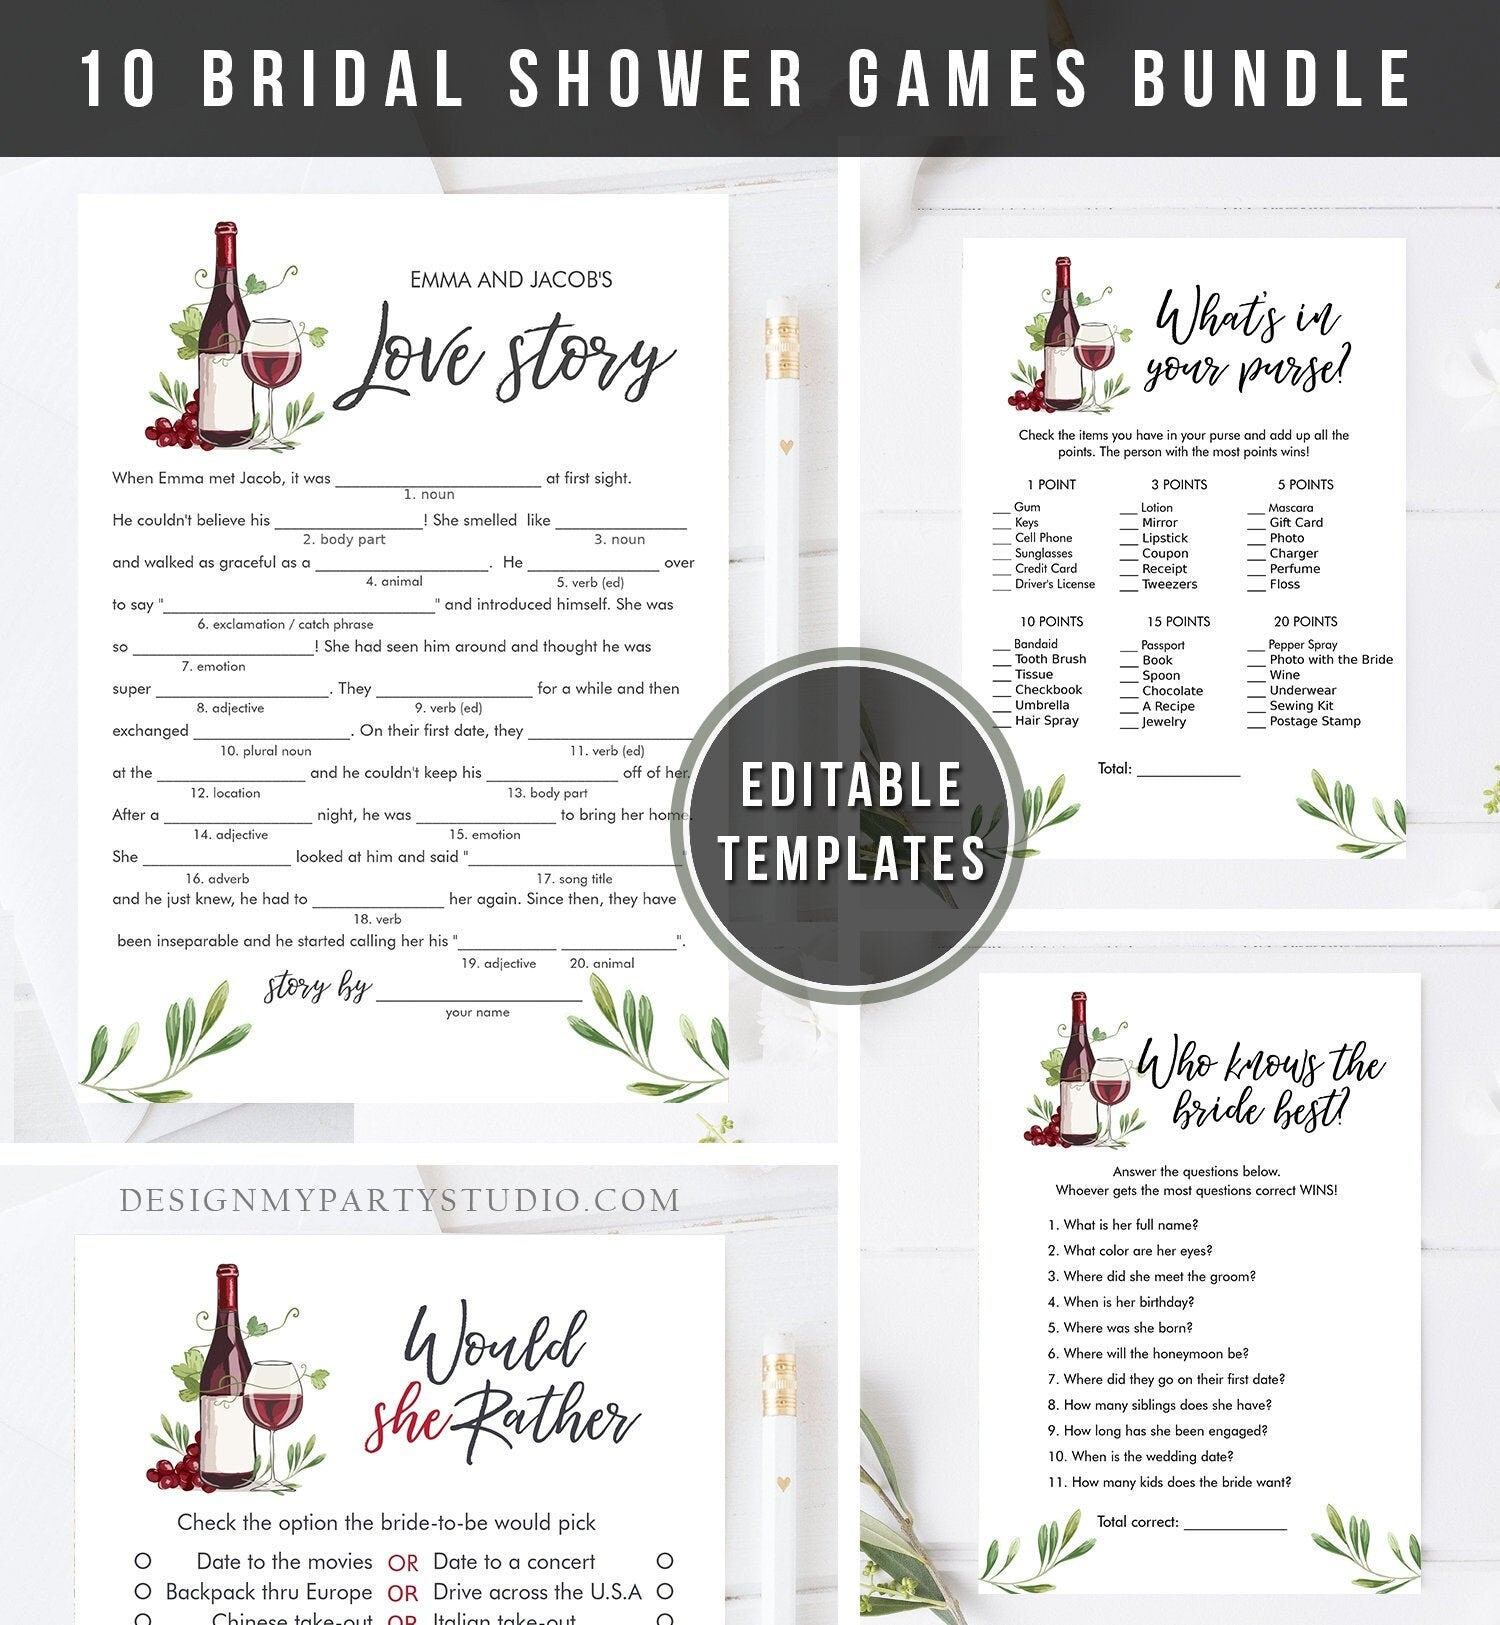 Editable Wine Tasting Bridal Shower Games Bundle Wedding Shower Activity Vineyard Grapes Brunch and Bubbly Corjl Template Printable 0234